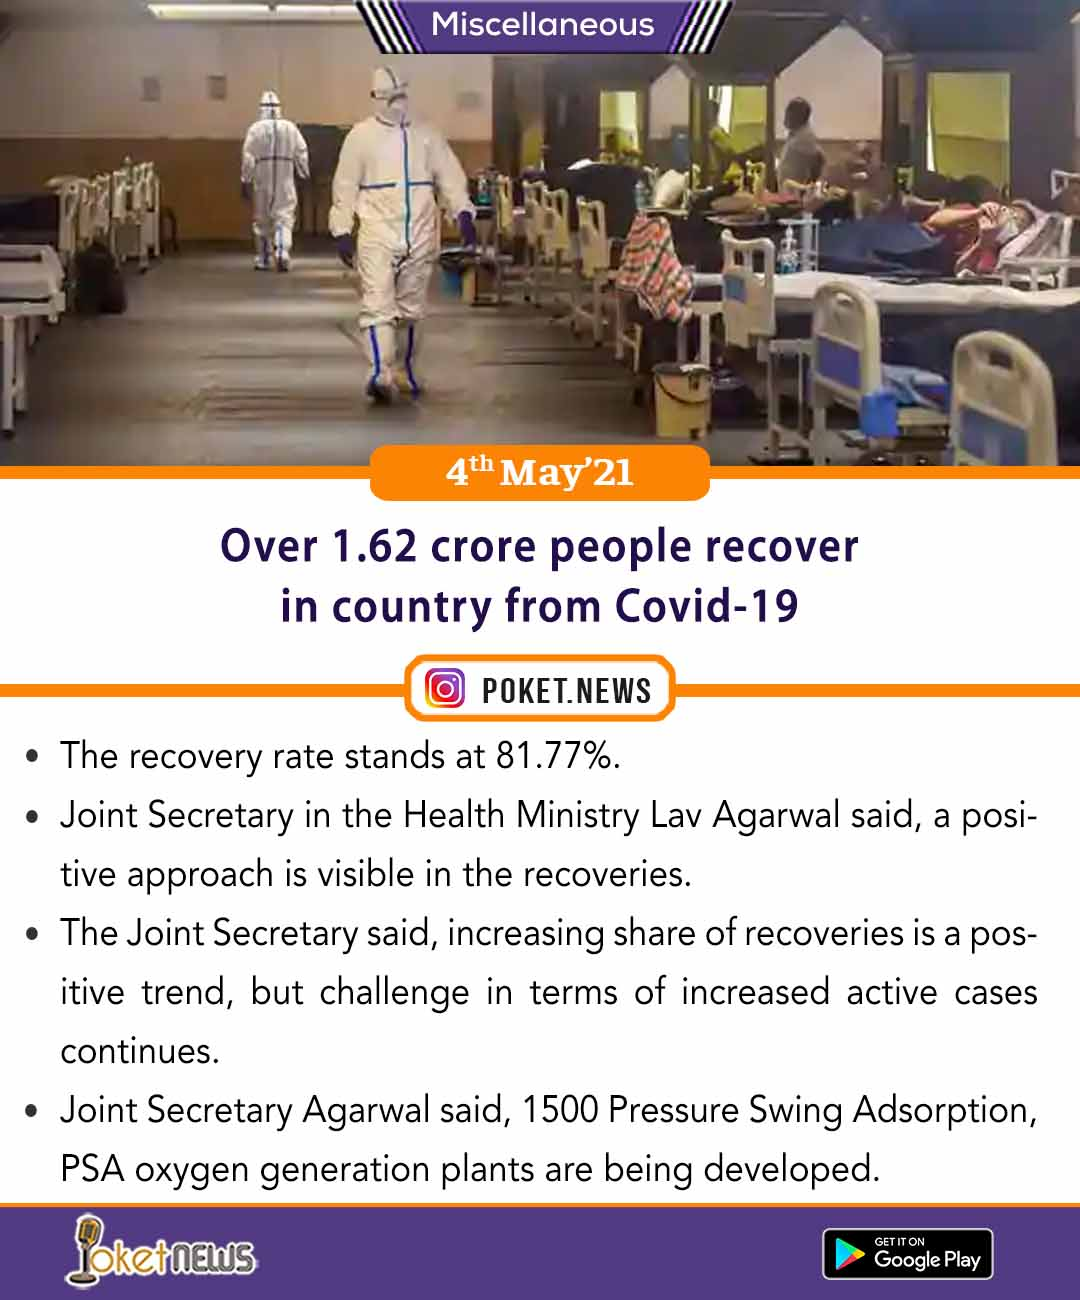 Over 1.62 crore people recover in country from Covid-19